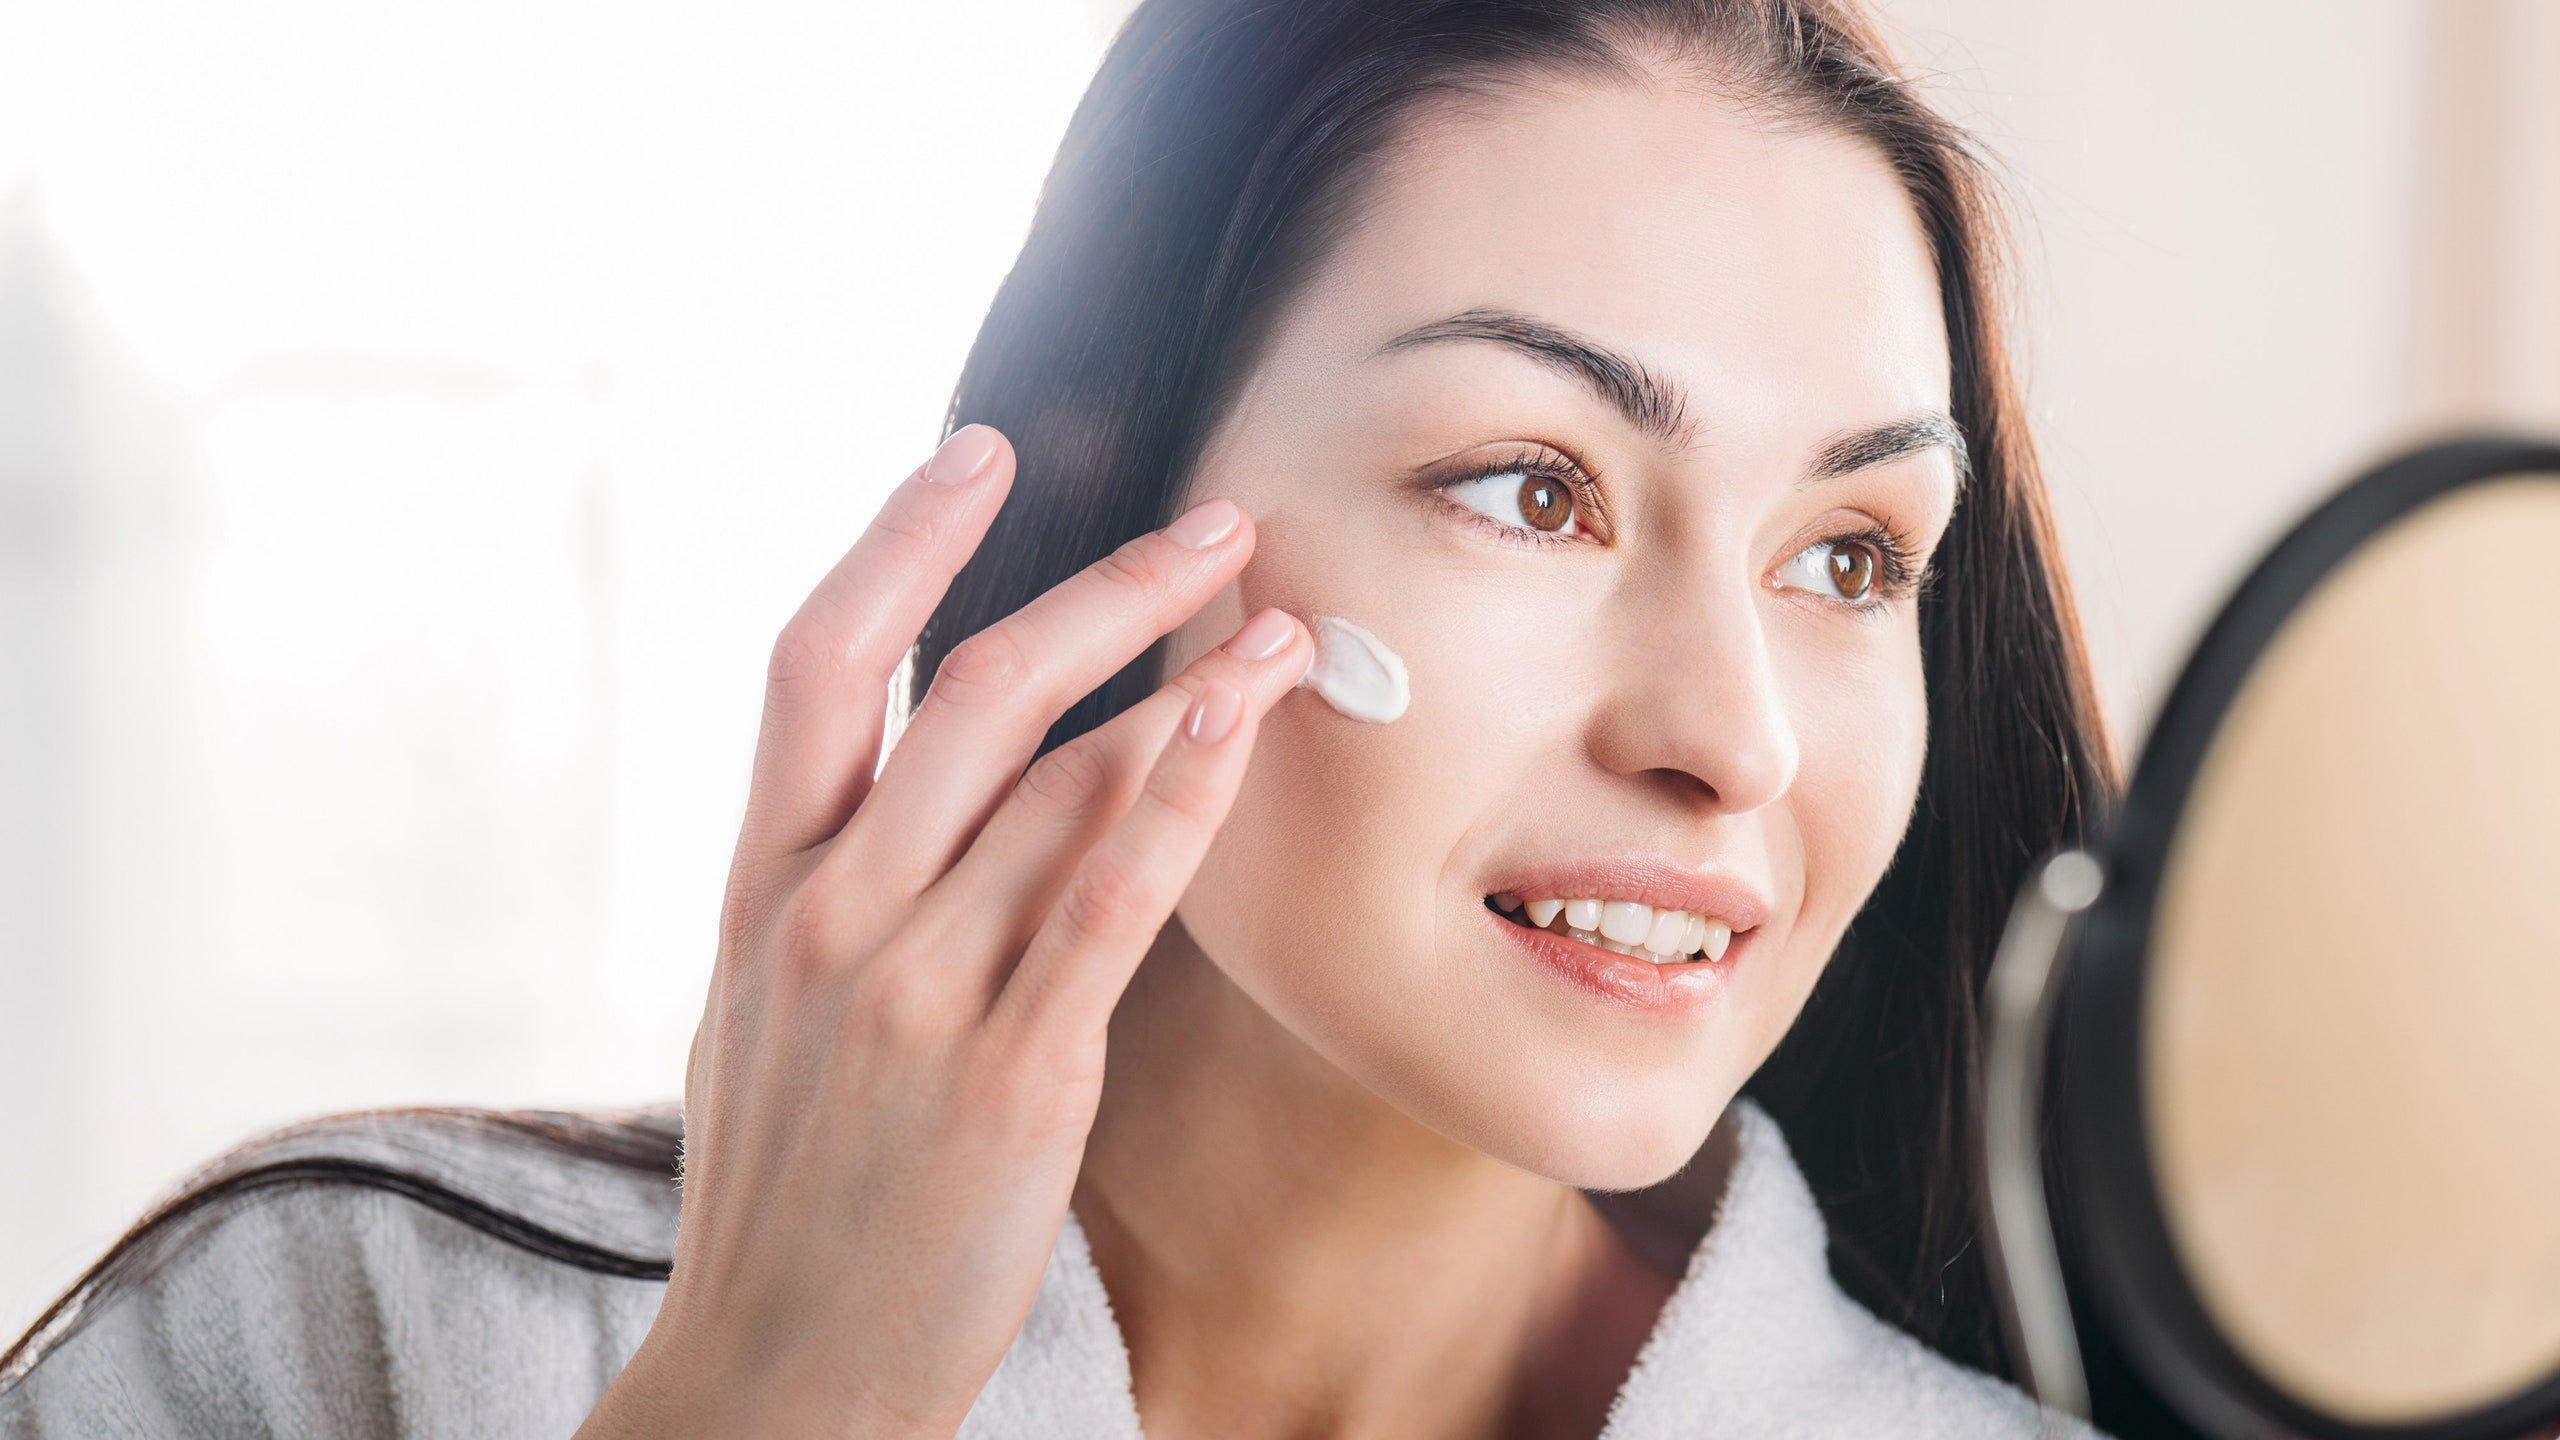 Use Face Serum To Take Care Of Your Skin